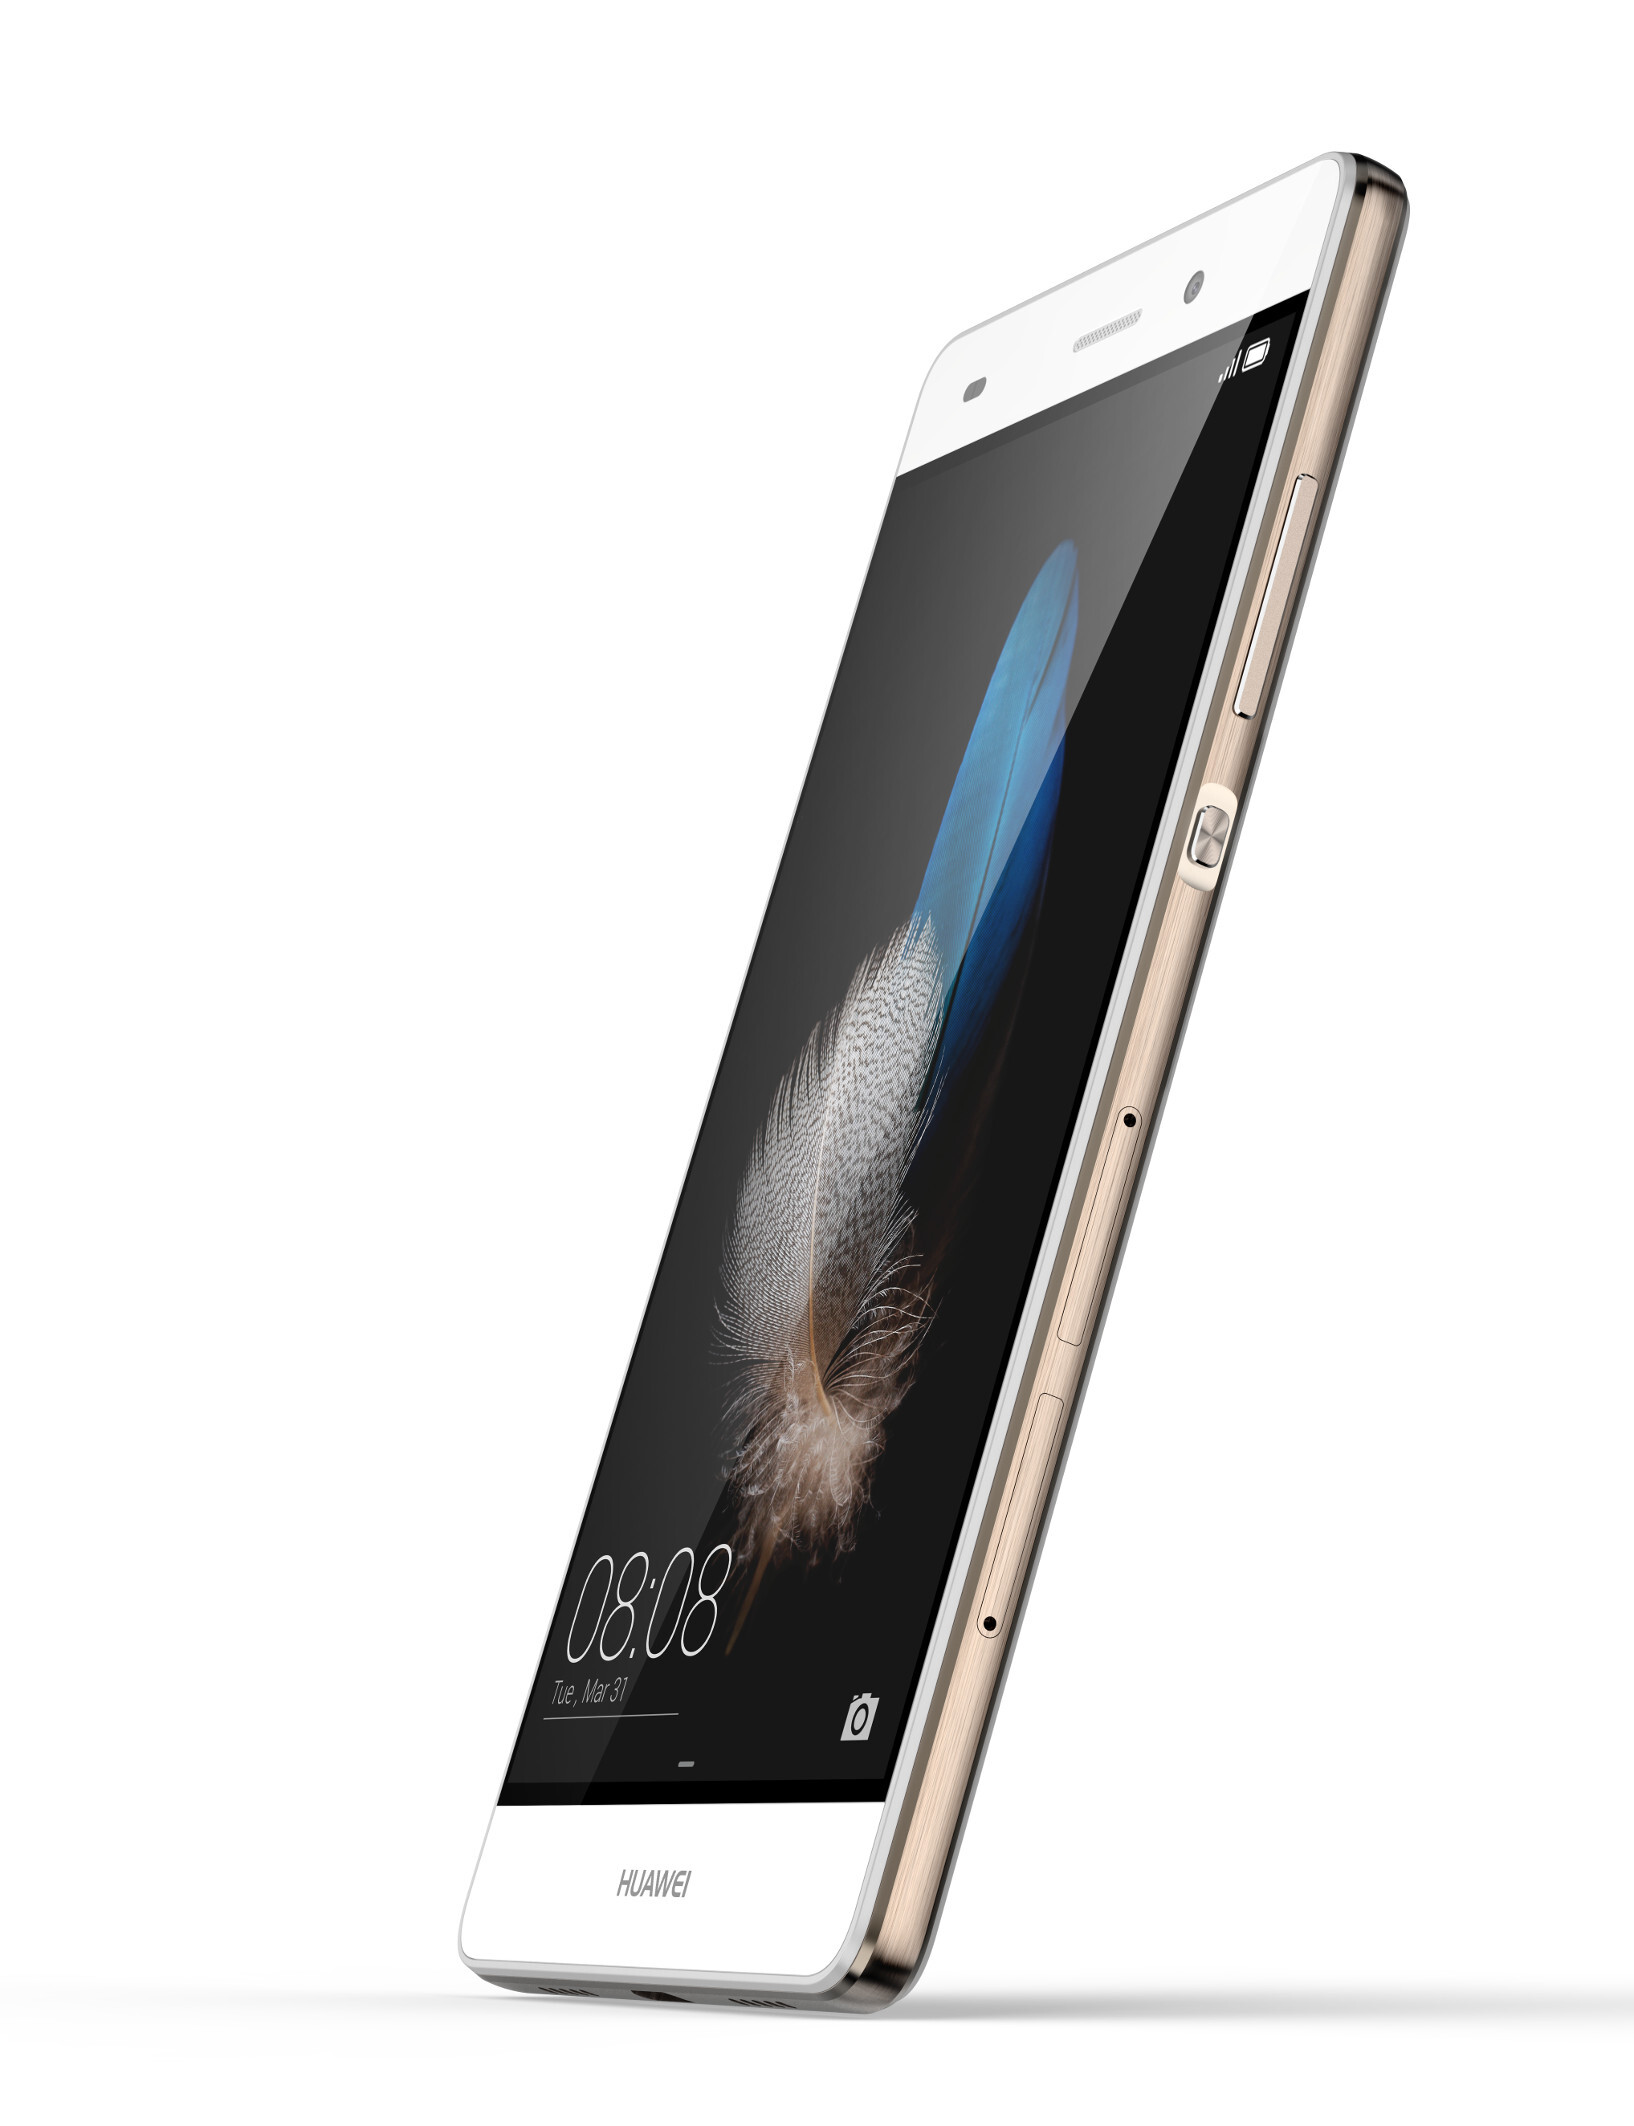 huawei p8 lite specs. Black Bedroom Furniture Sets. Home Design Ideas